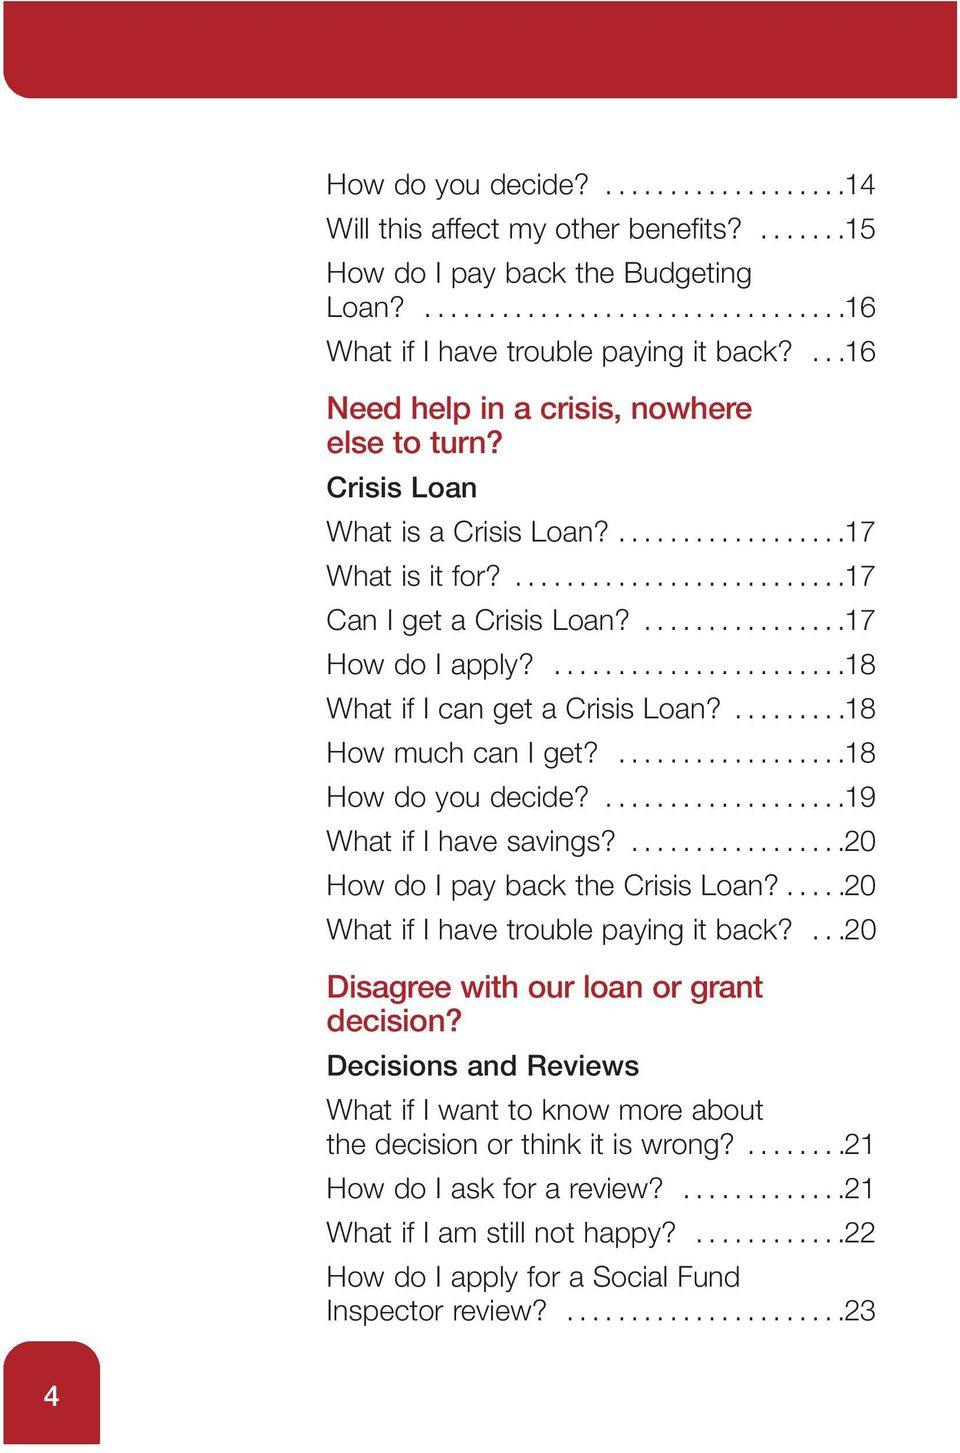 .......................18 What if I can get a Crisis Loan?.........18 How much can I get?..................18 How do you decide?...................19 What if I have savings?